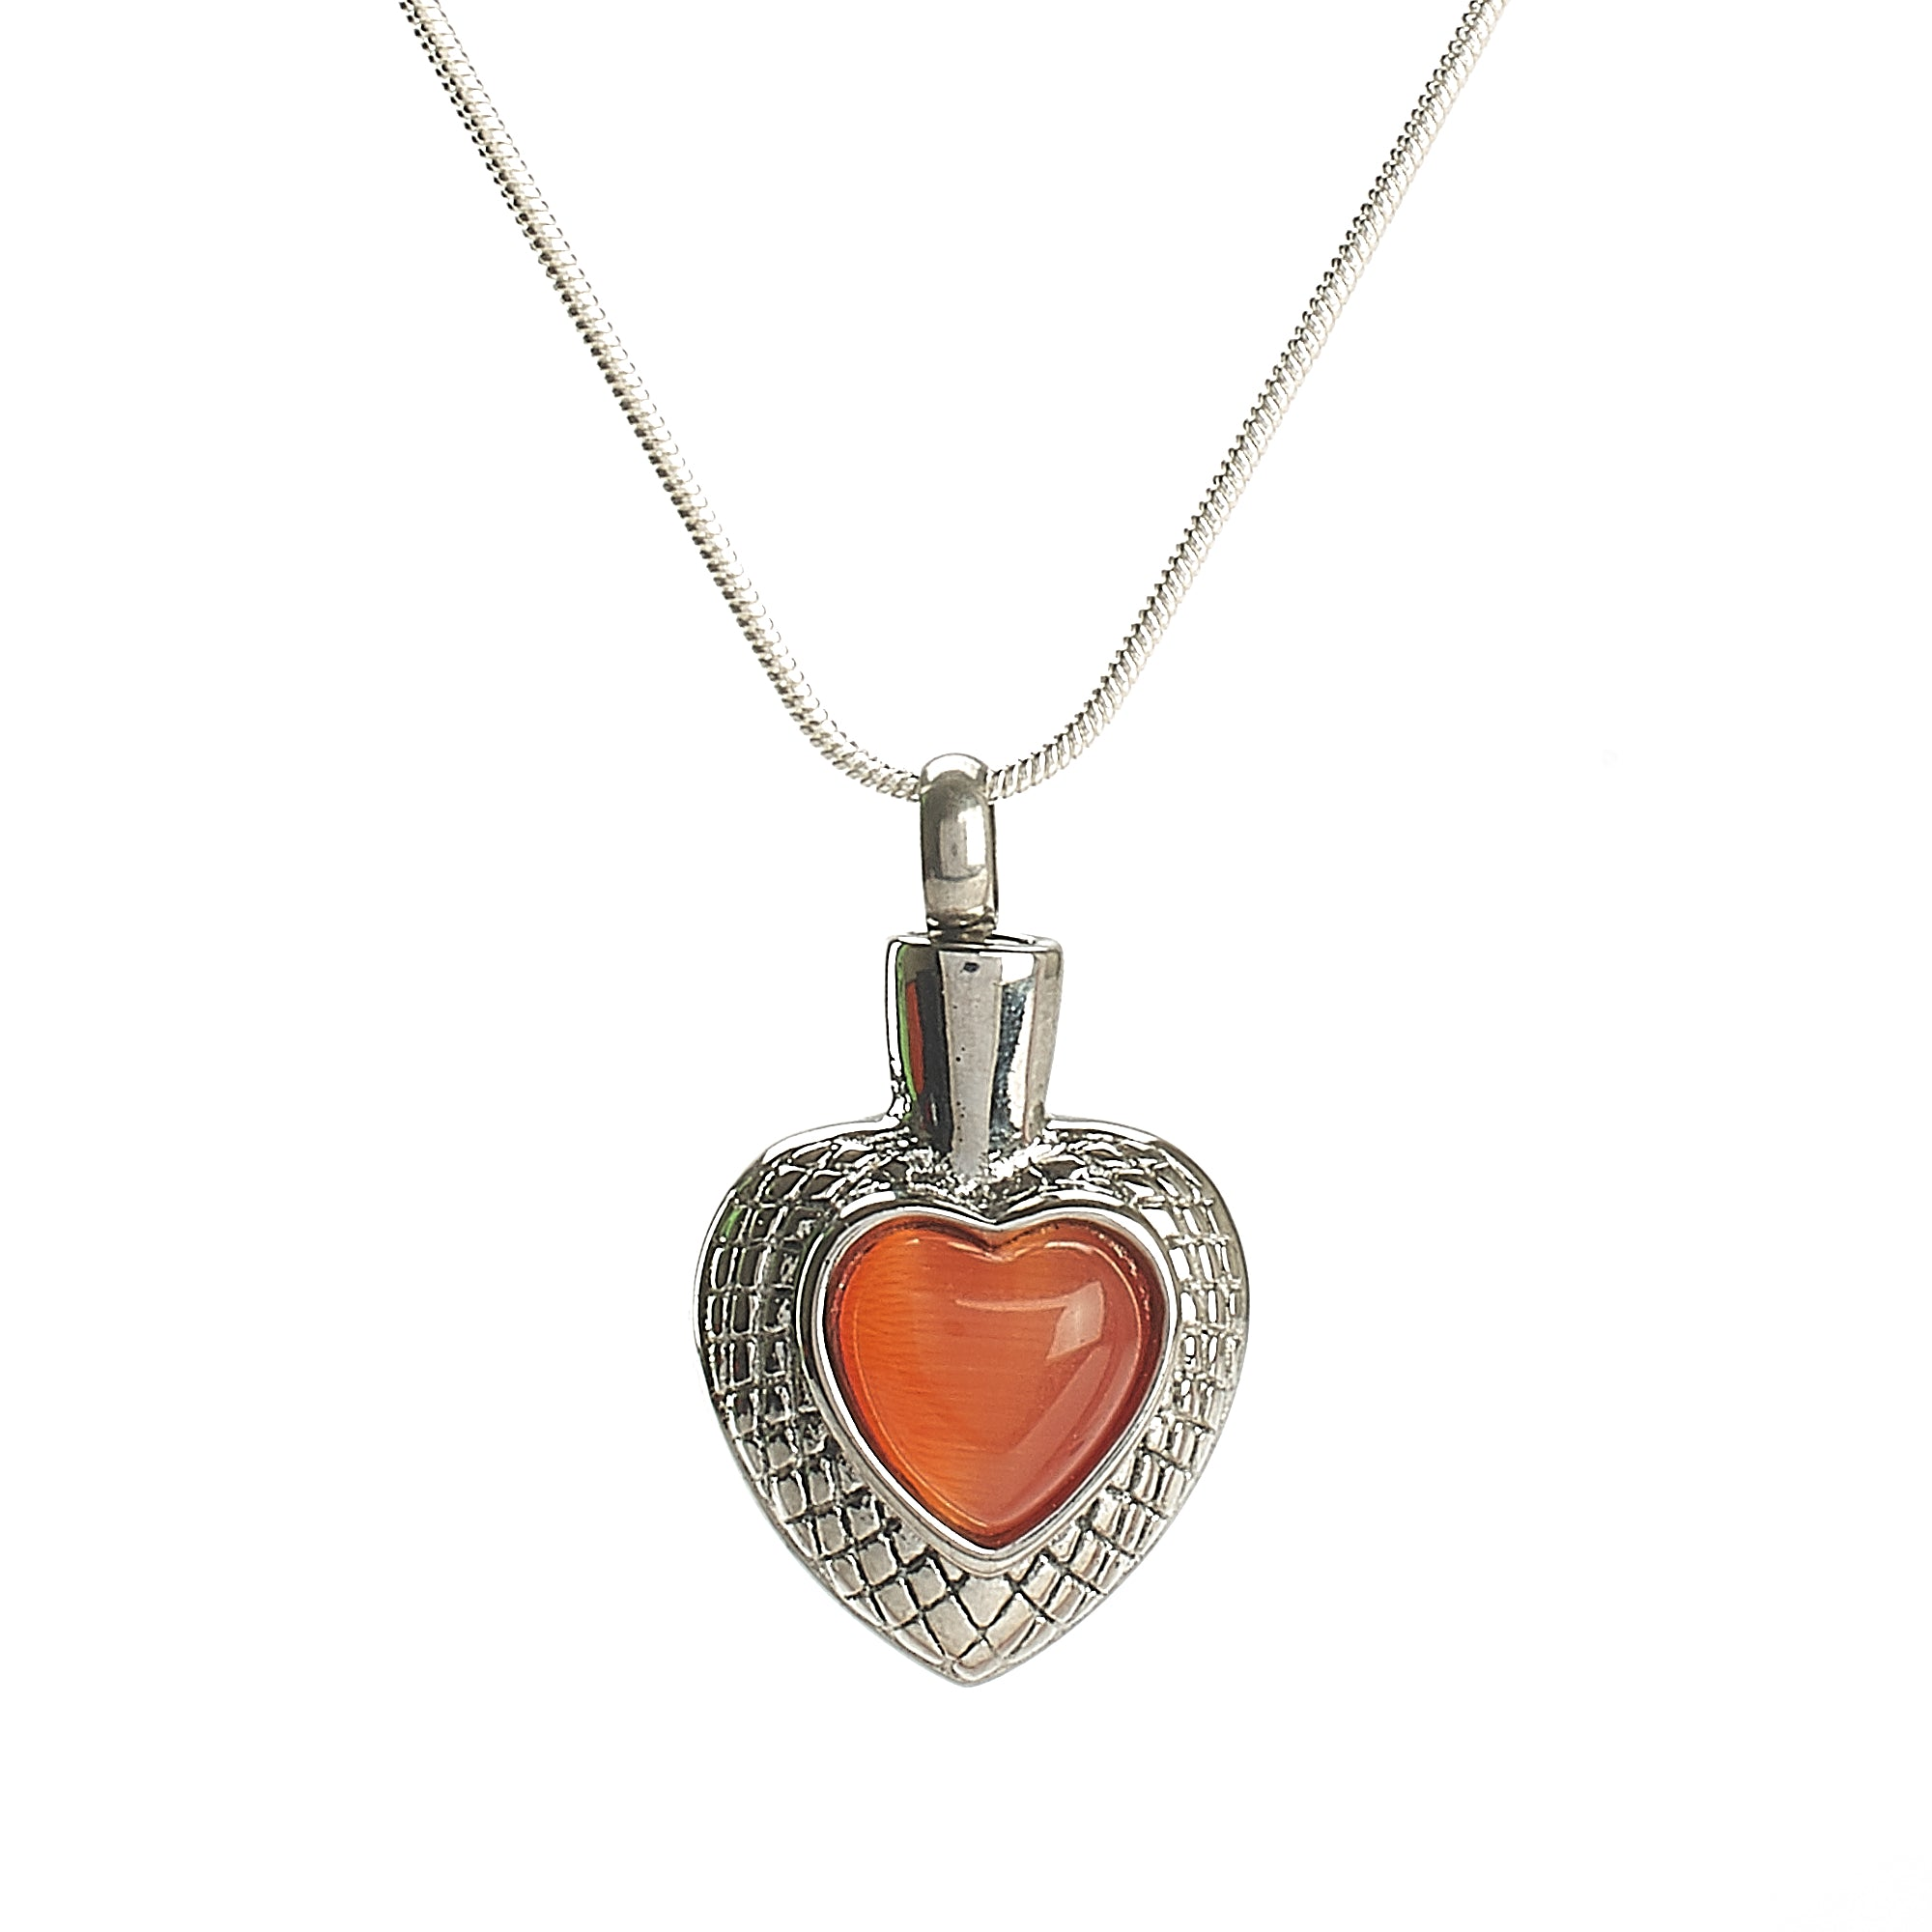 Cremation Pendant - Small Celtic Heart - Orange